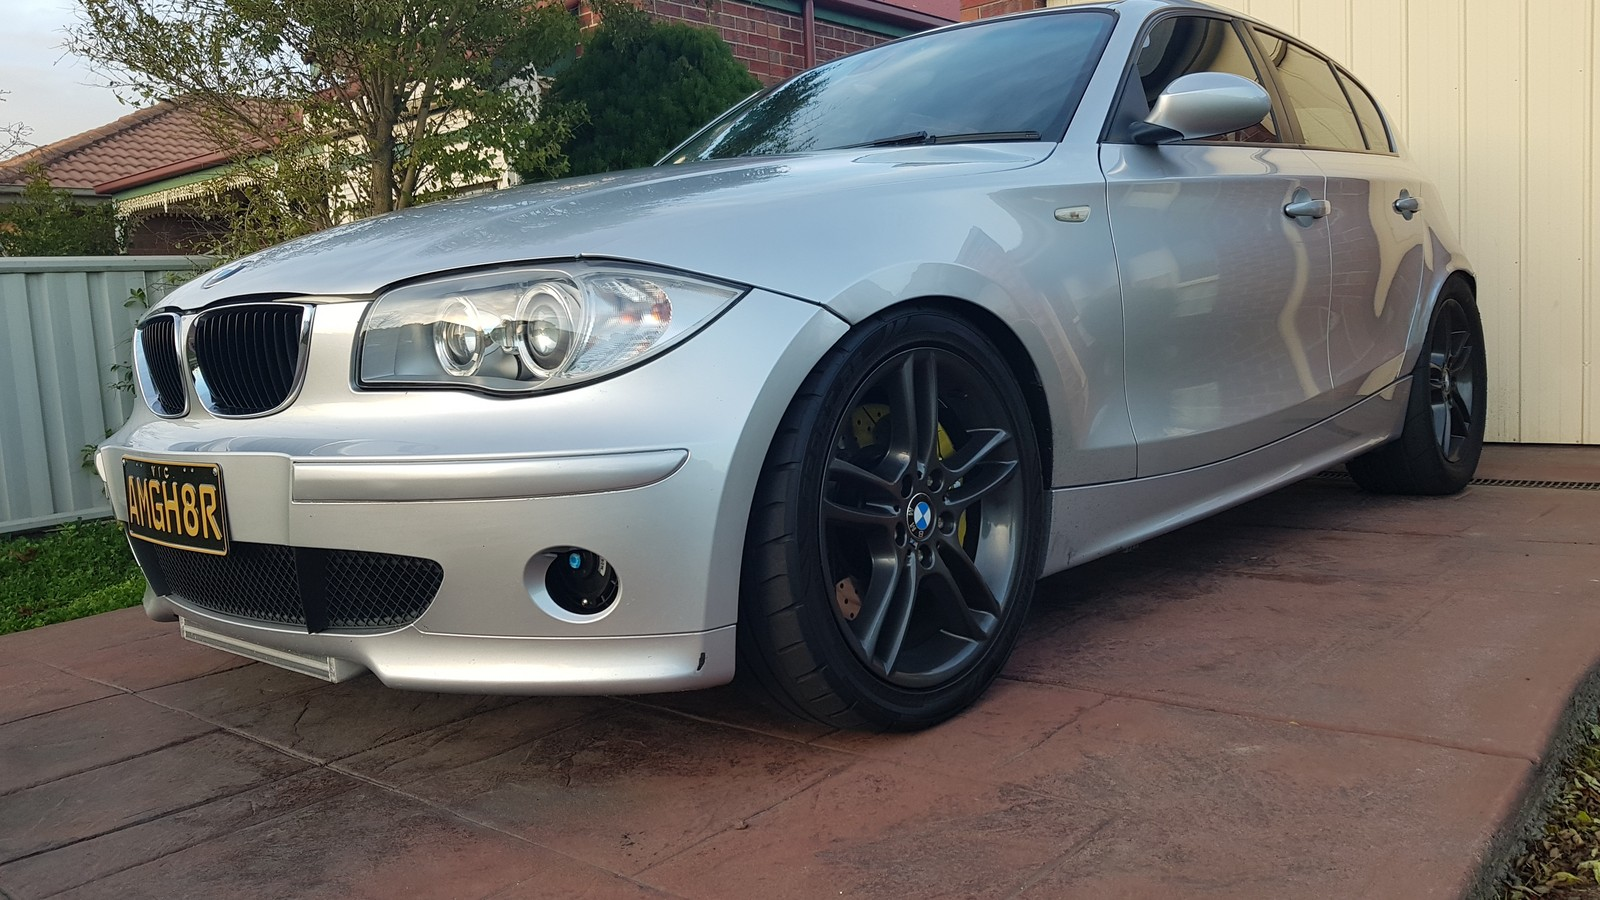 2004 Silver BMW 120i  picture, mods, upgrades